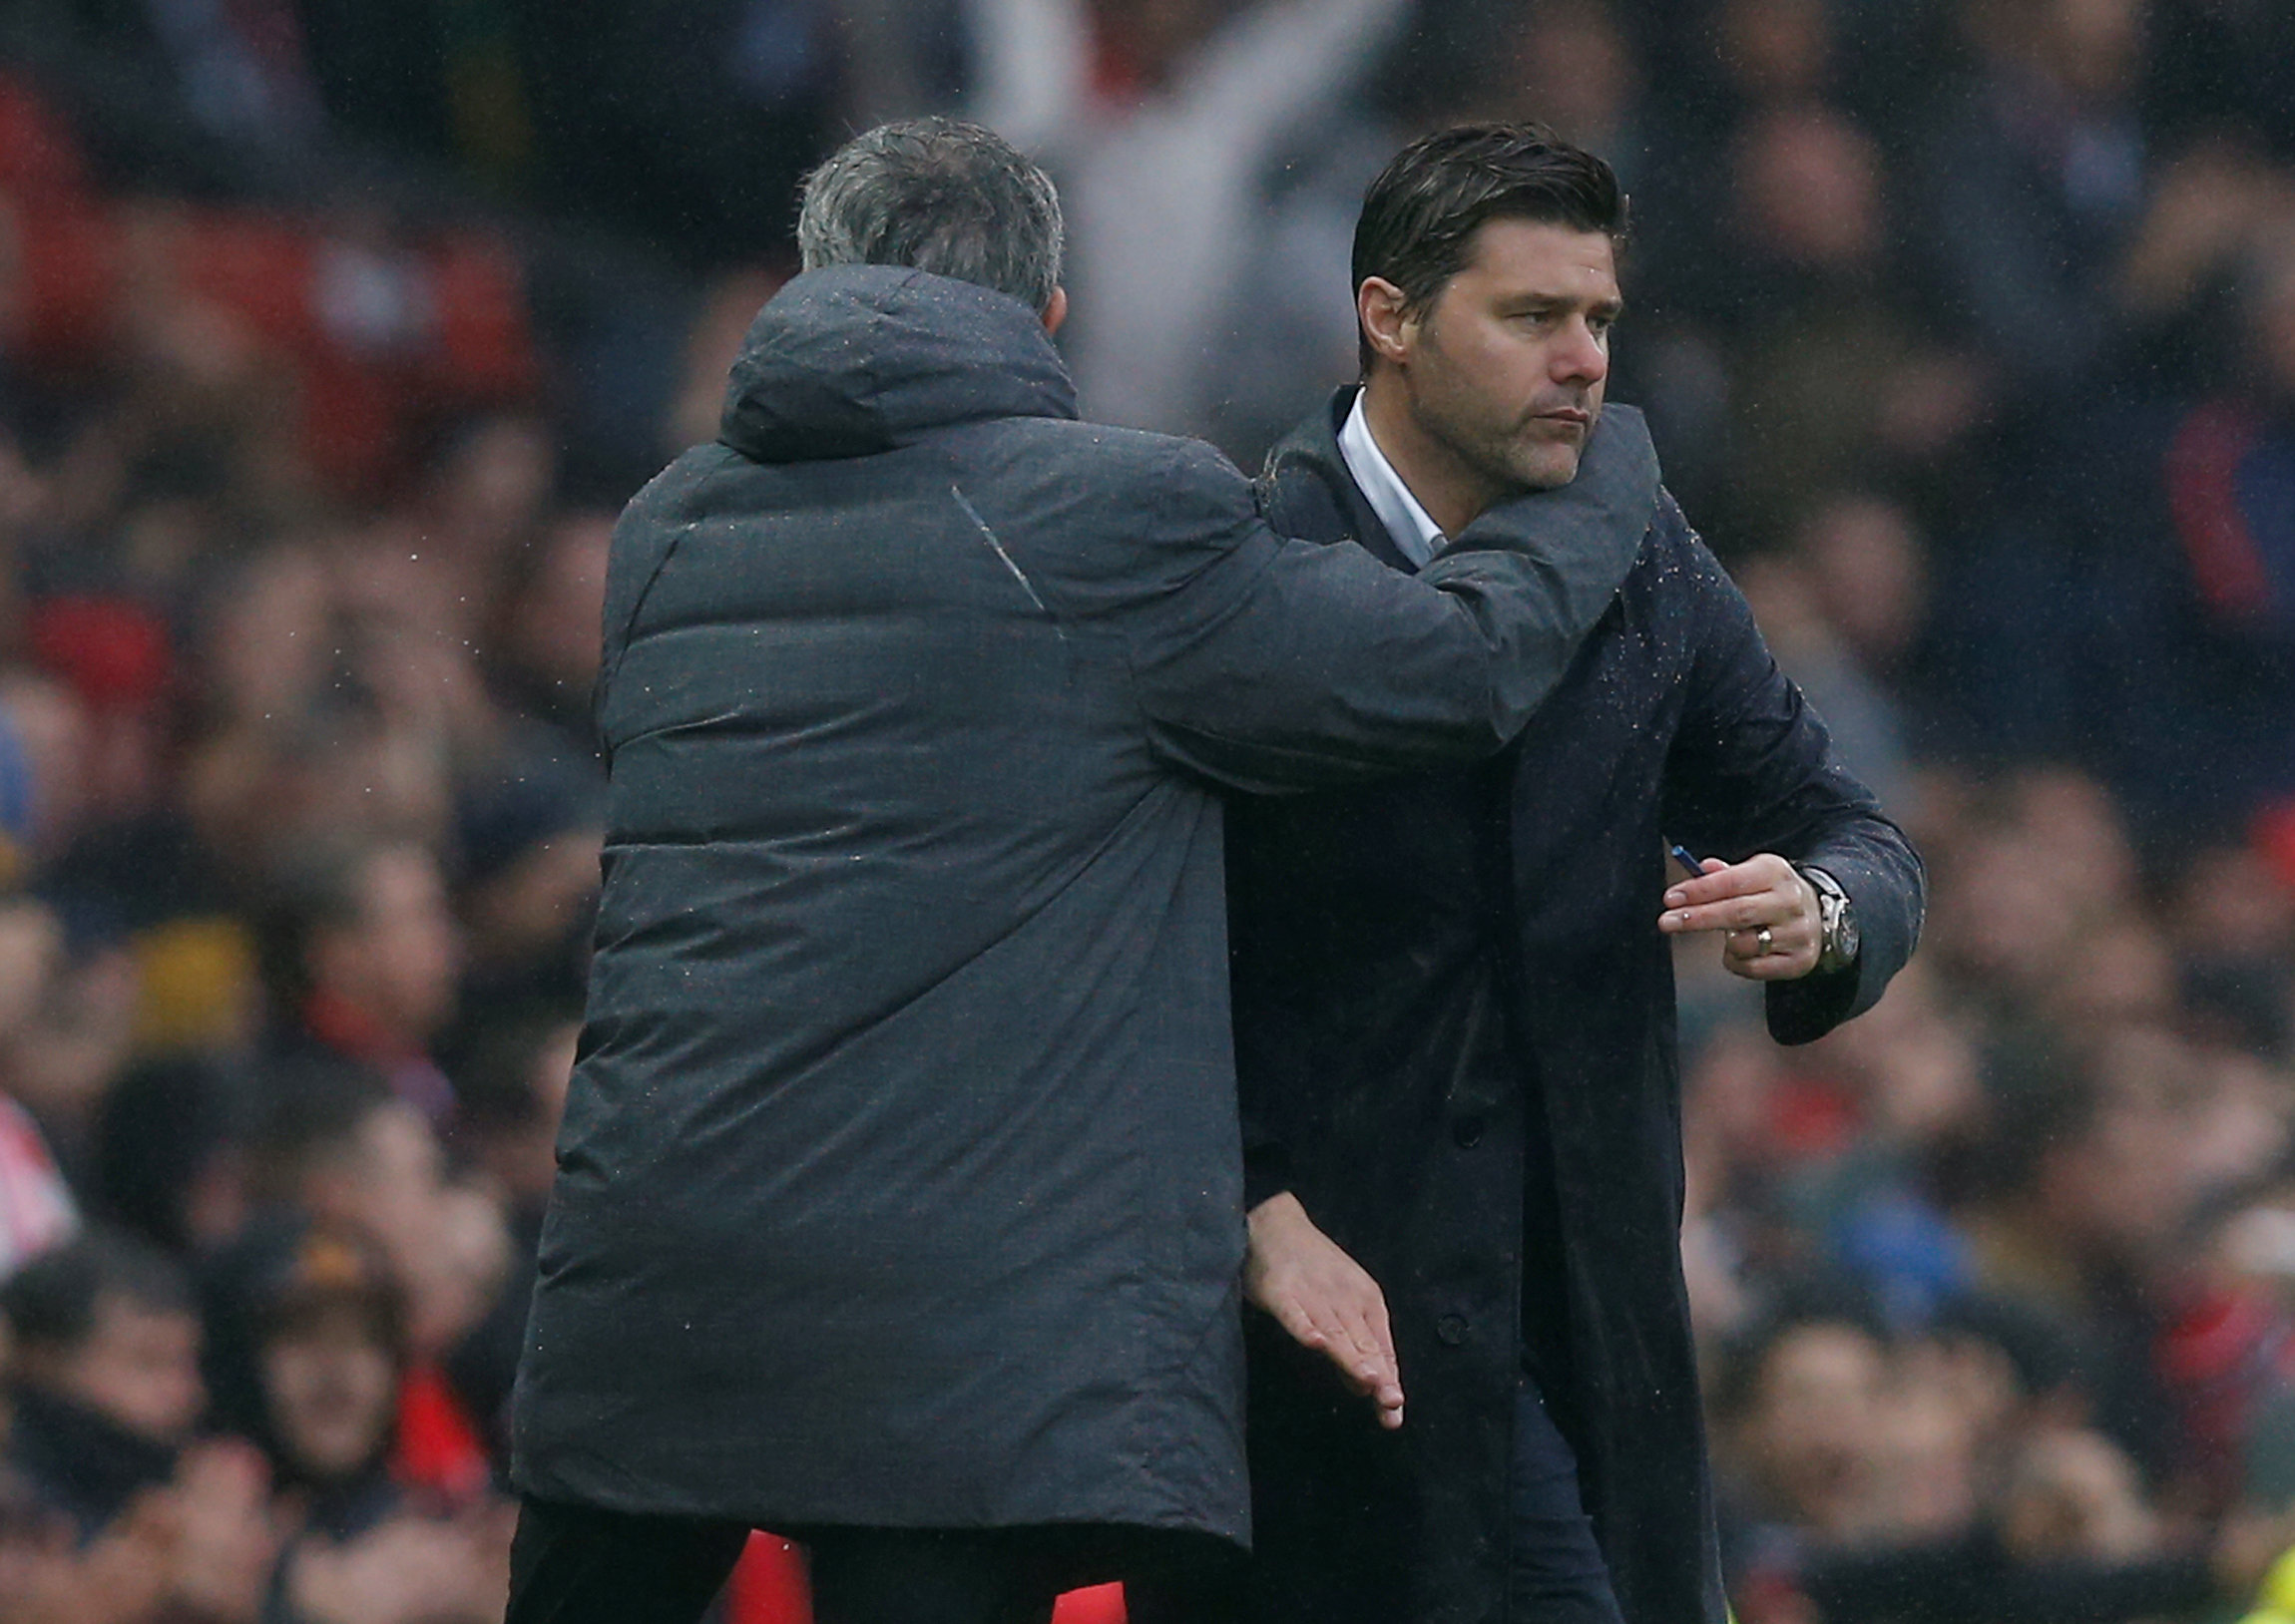 Jose Mourinho and Mauricio Pochettino at full-time. Picture: Action Images